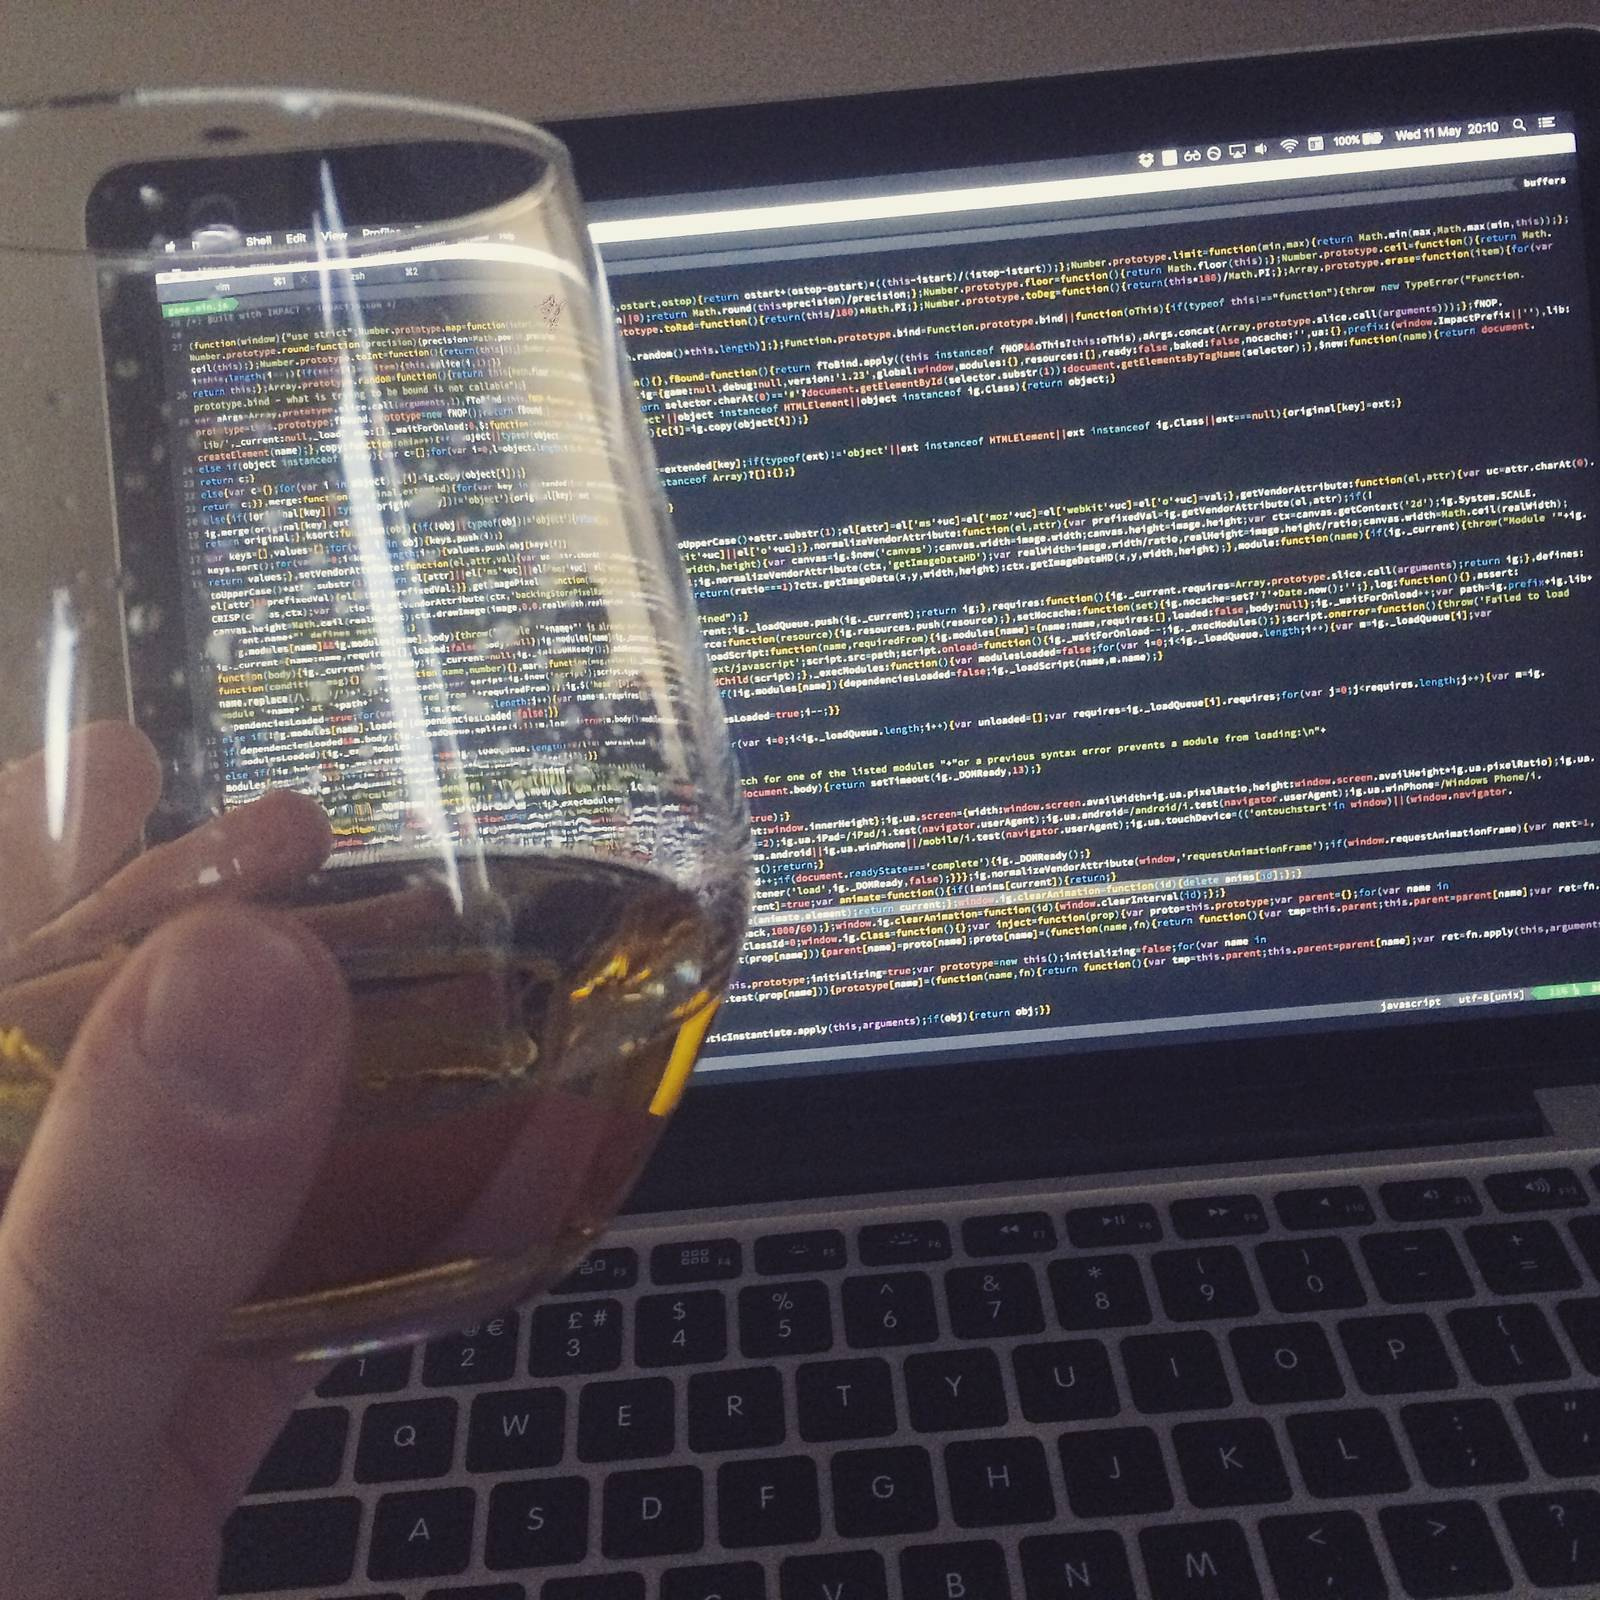 Whiskey and some other dude's minified code